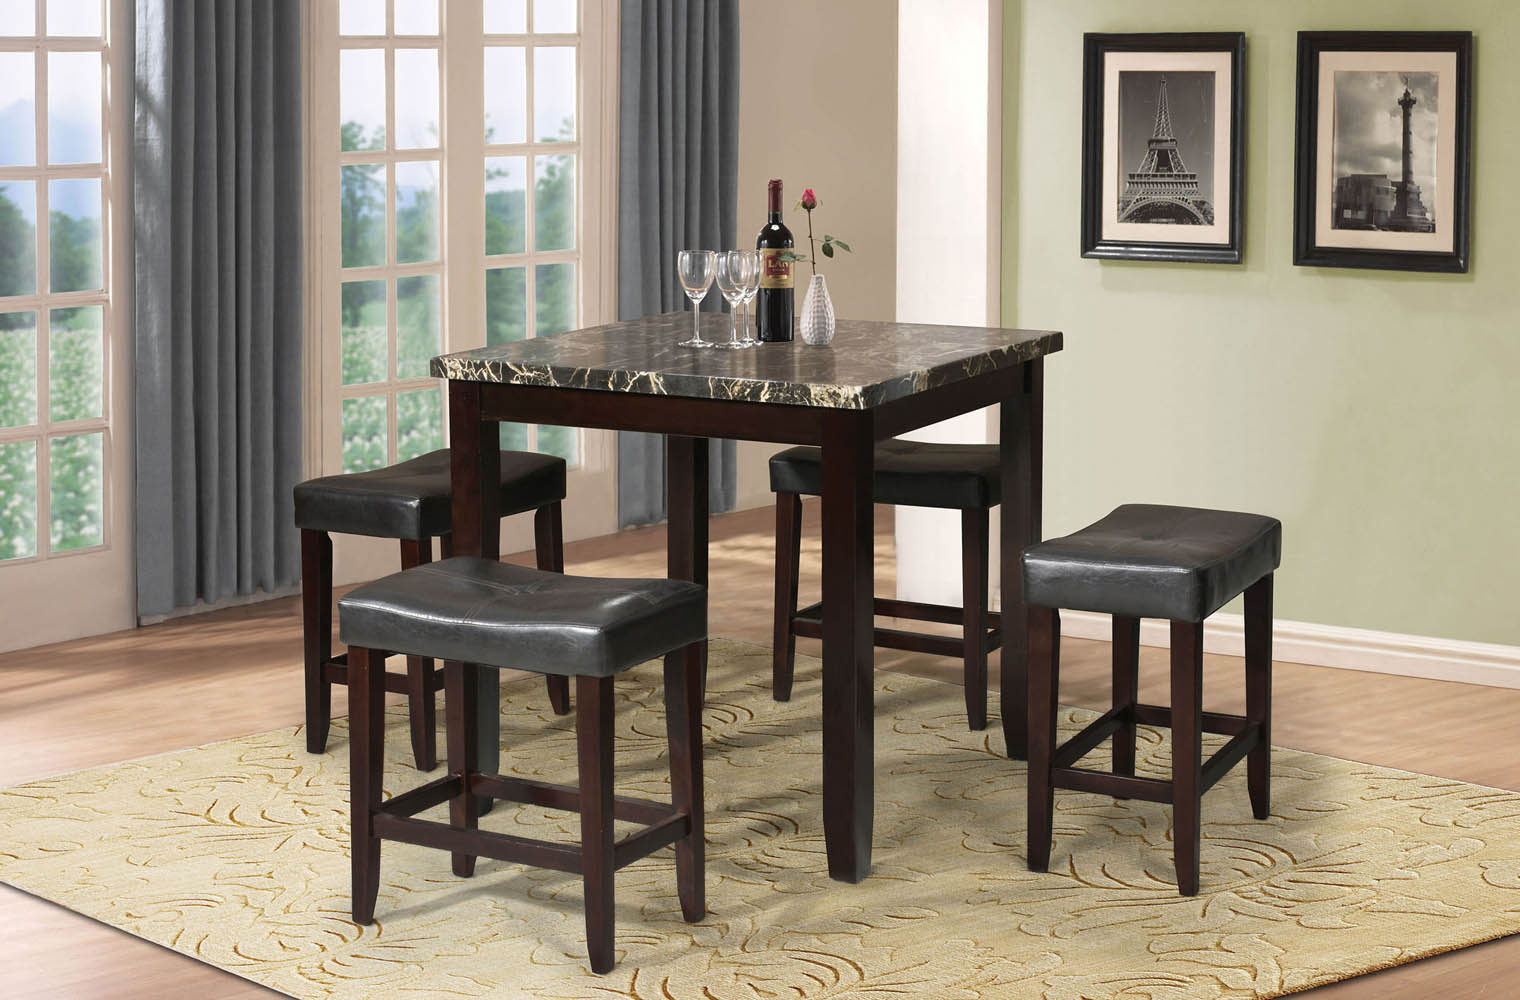 Glass Dining Table Set 4 Chairs Bar Table Sets Amerihome 3 Piece Adjustable Height Pub Table Set